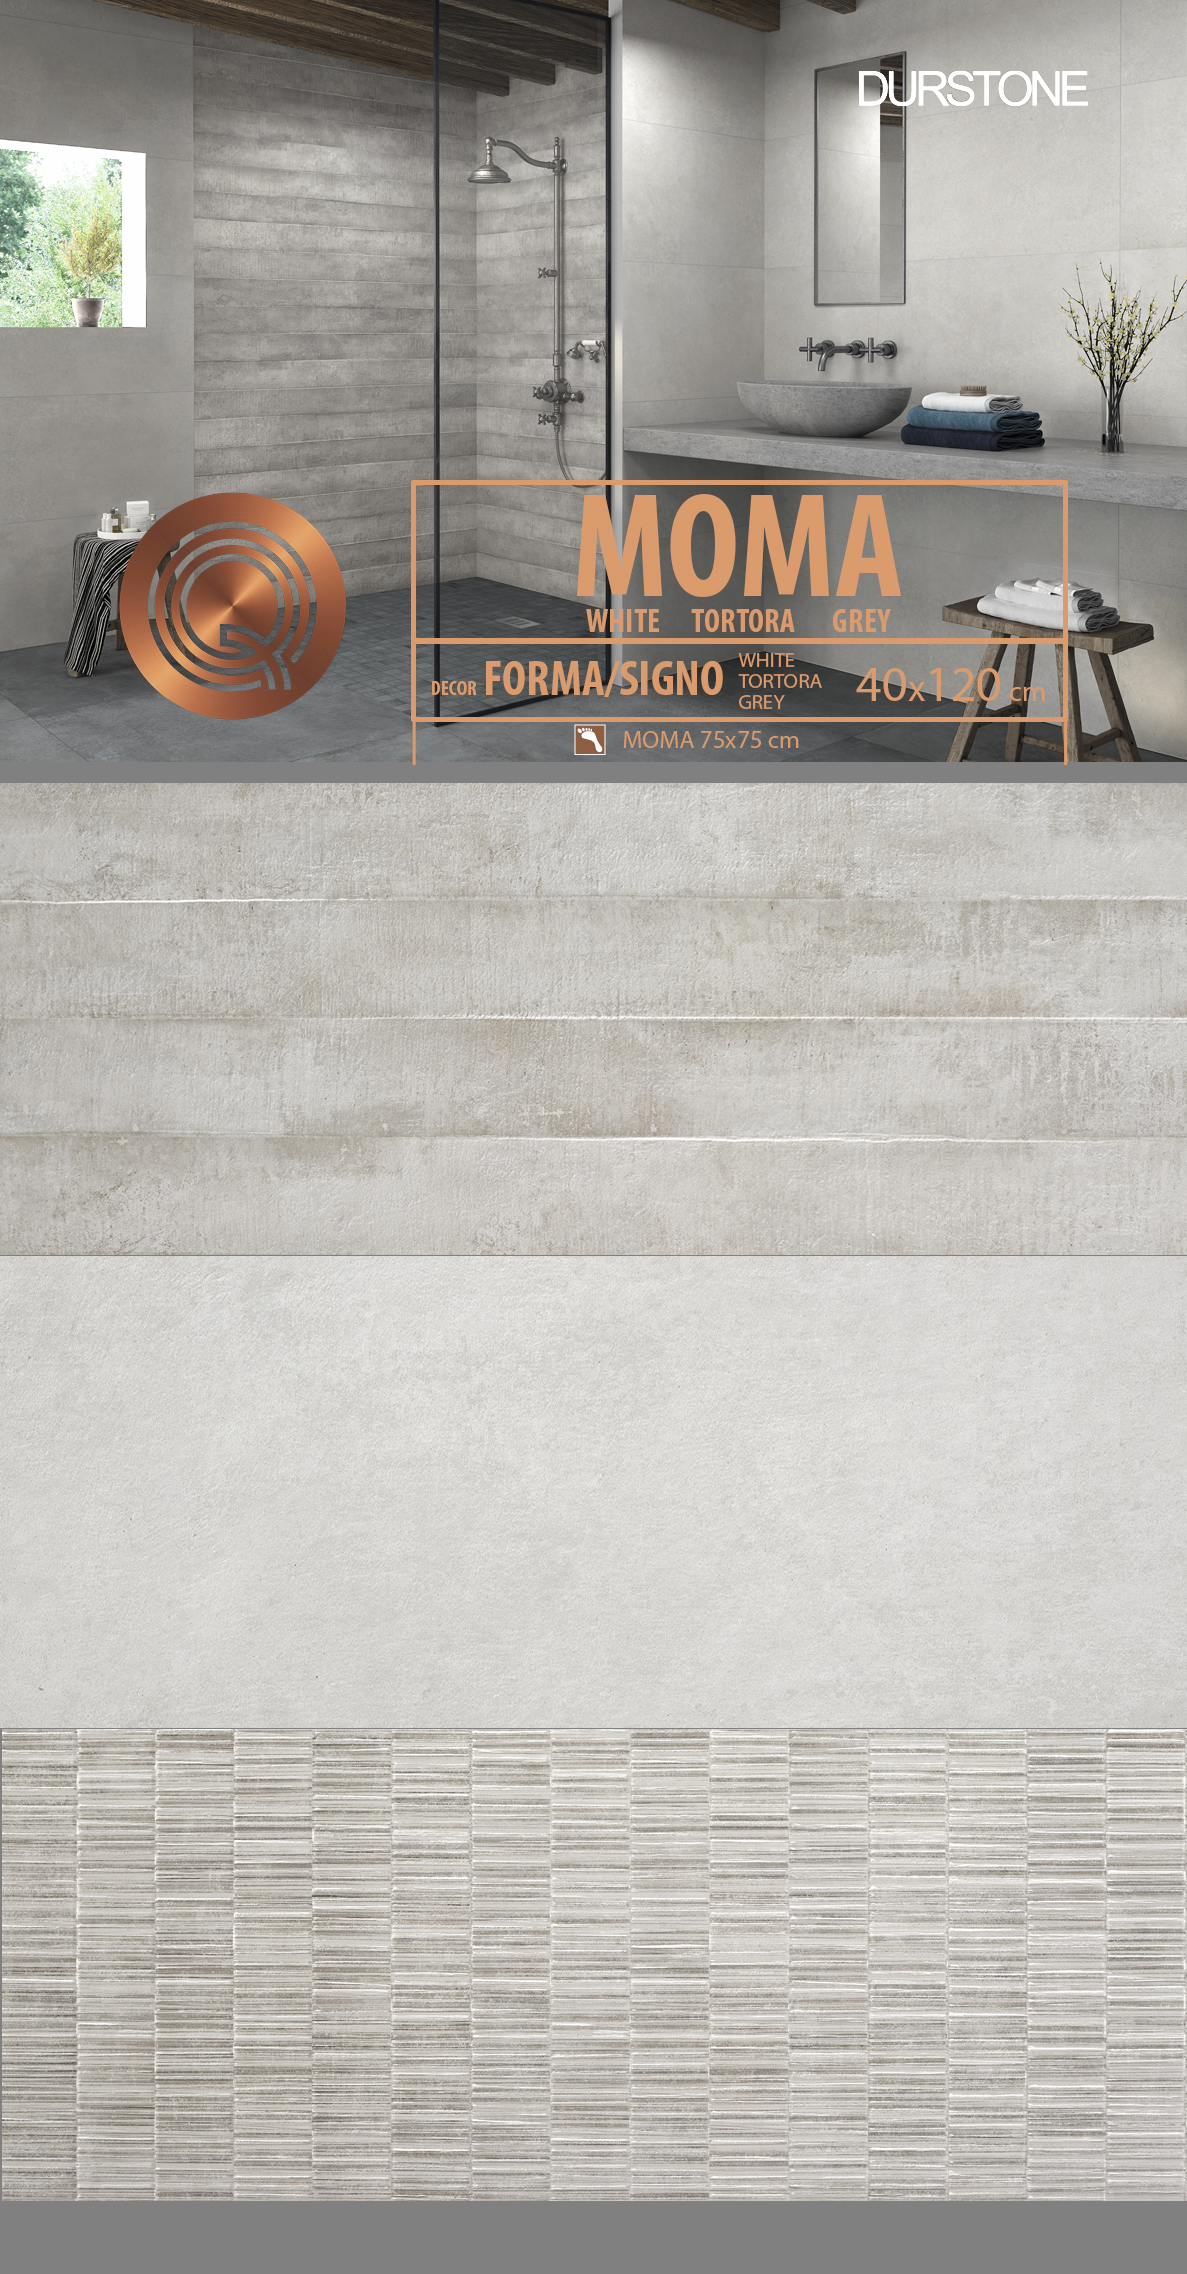 6035 RV PANEL MIX MOMA / FORMA / SIGNO GREY Cod. 6035